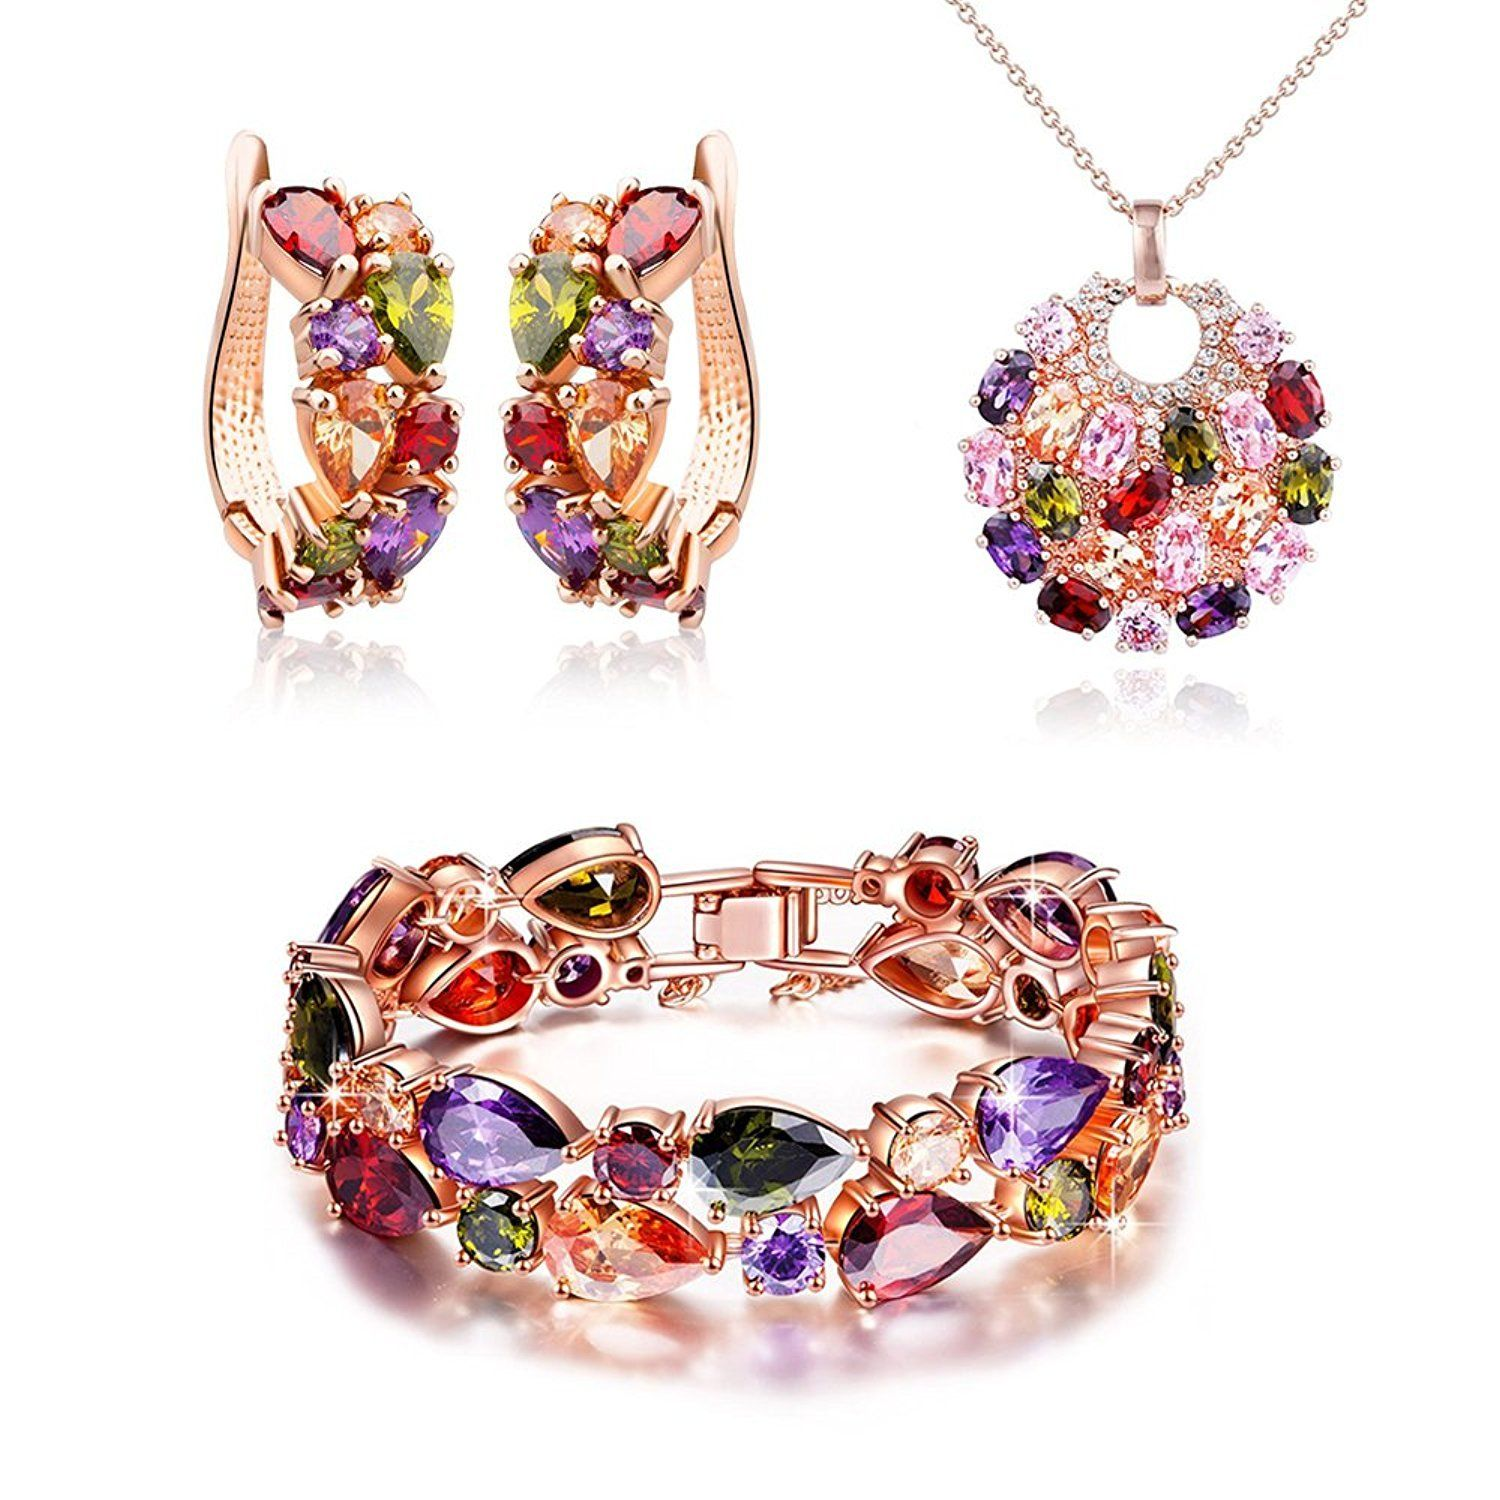 Heart multicolor zircon pendant necklace bracelet earrings jewelry